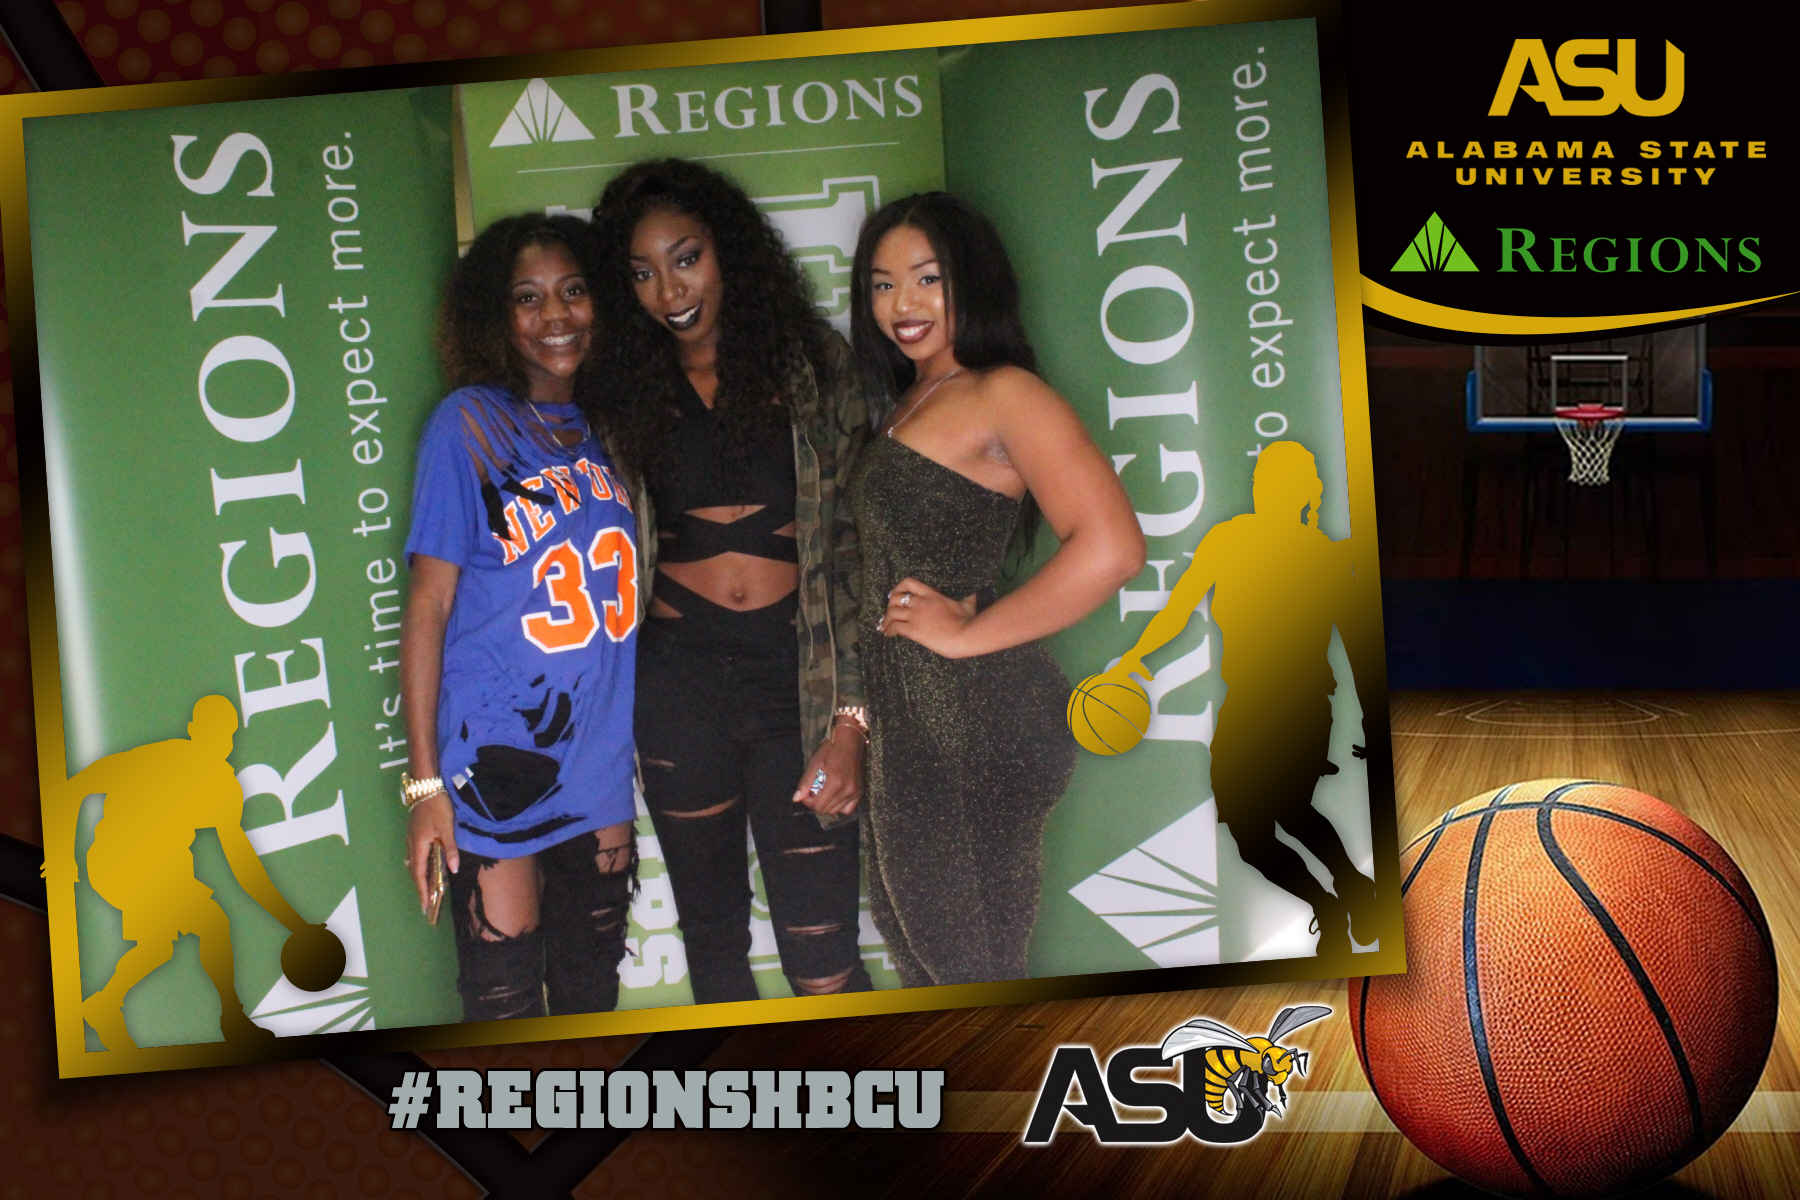 Regions / ASU Basketball Game